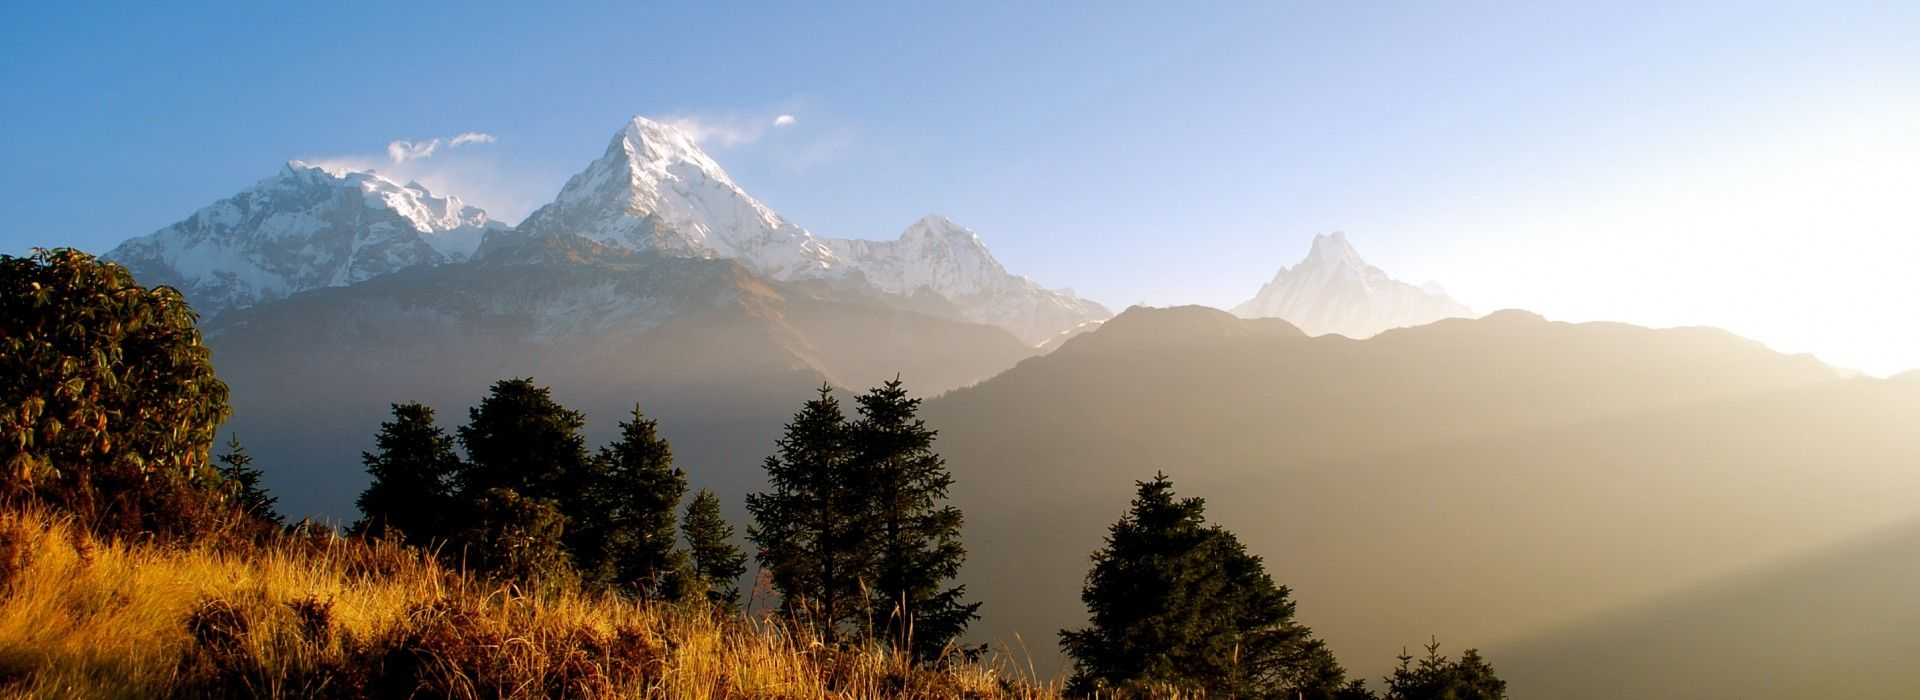 Natural landmarks sightseeing Tours in Nepal